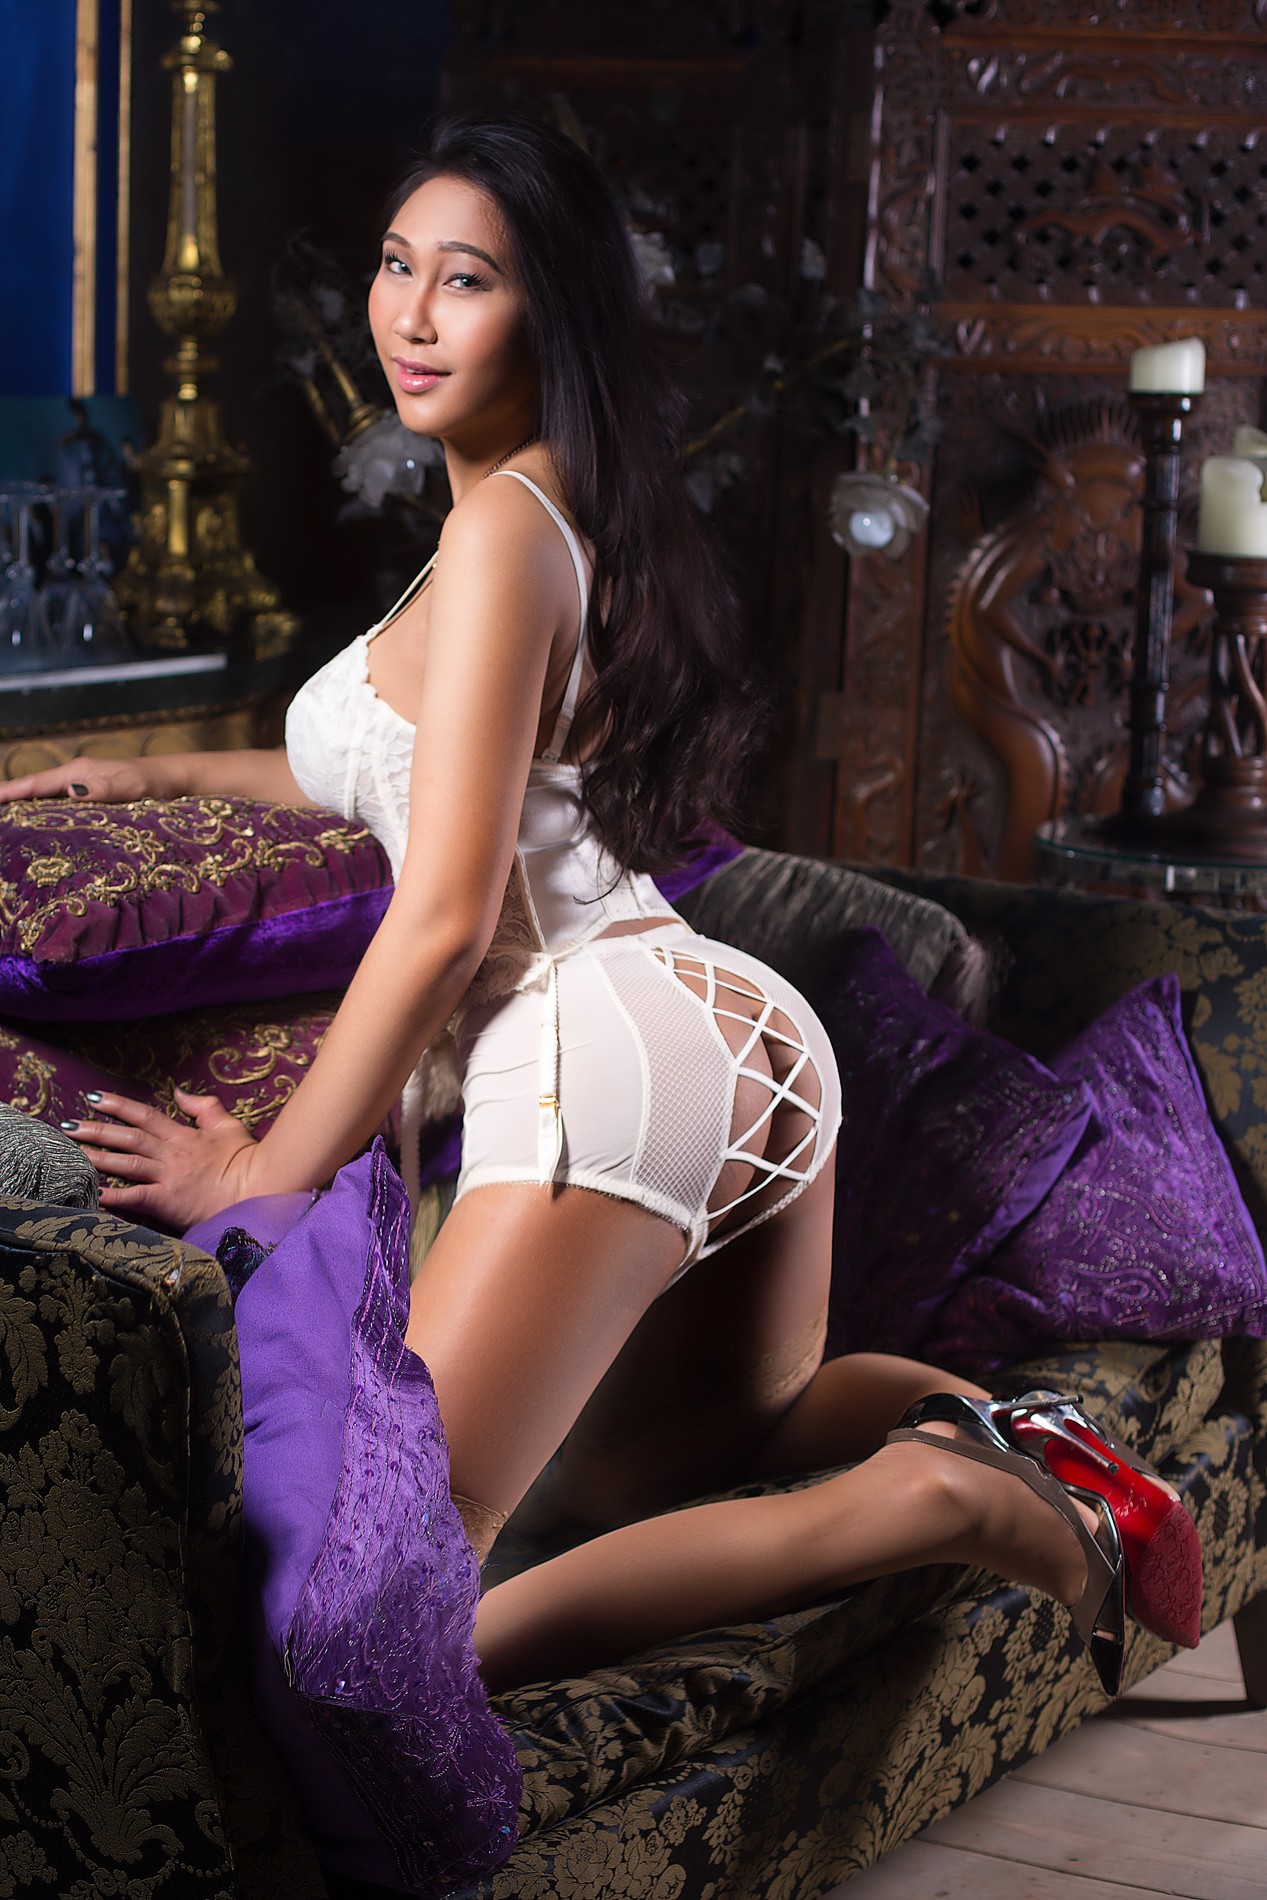 thai escorts uk sexfilm